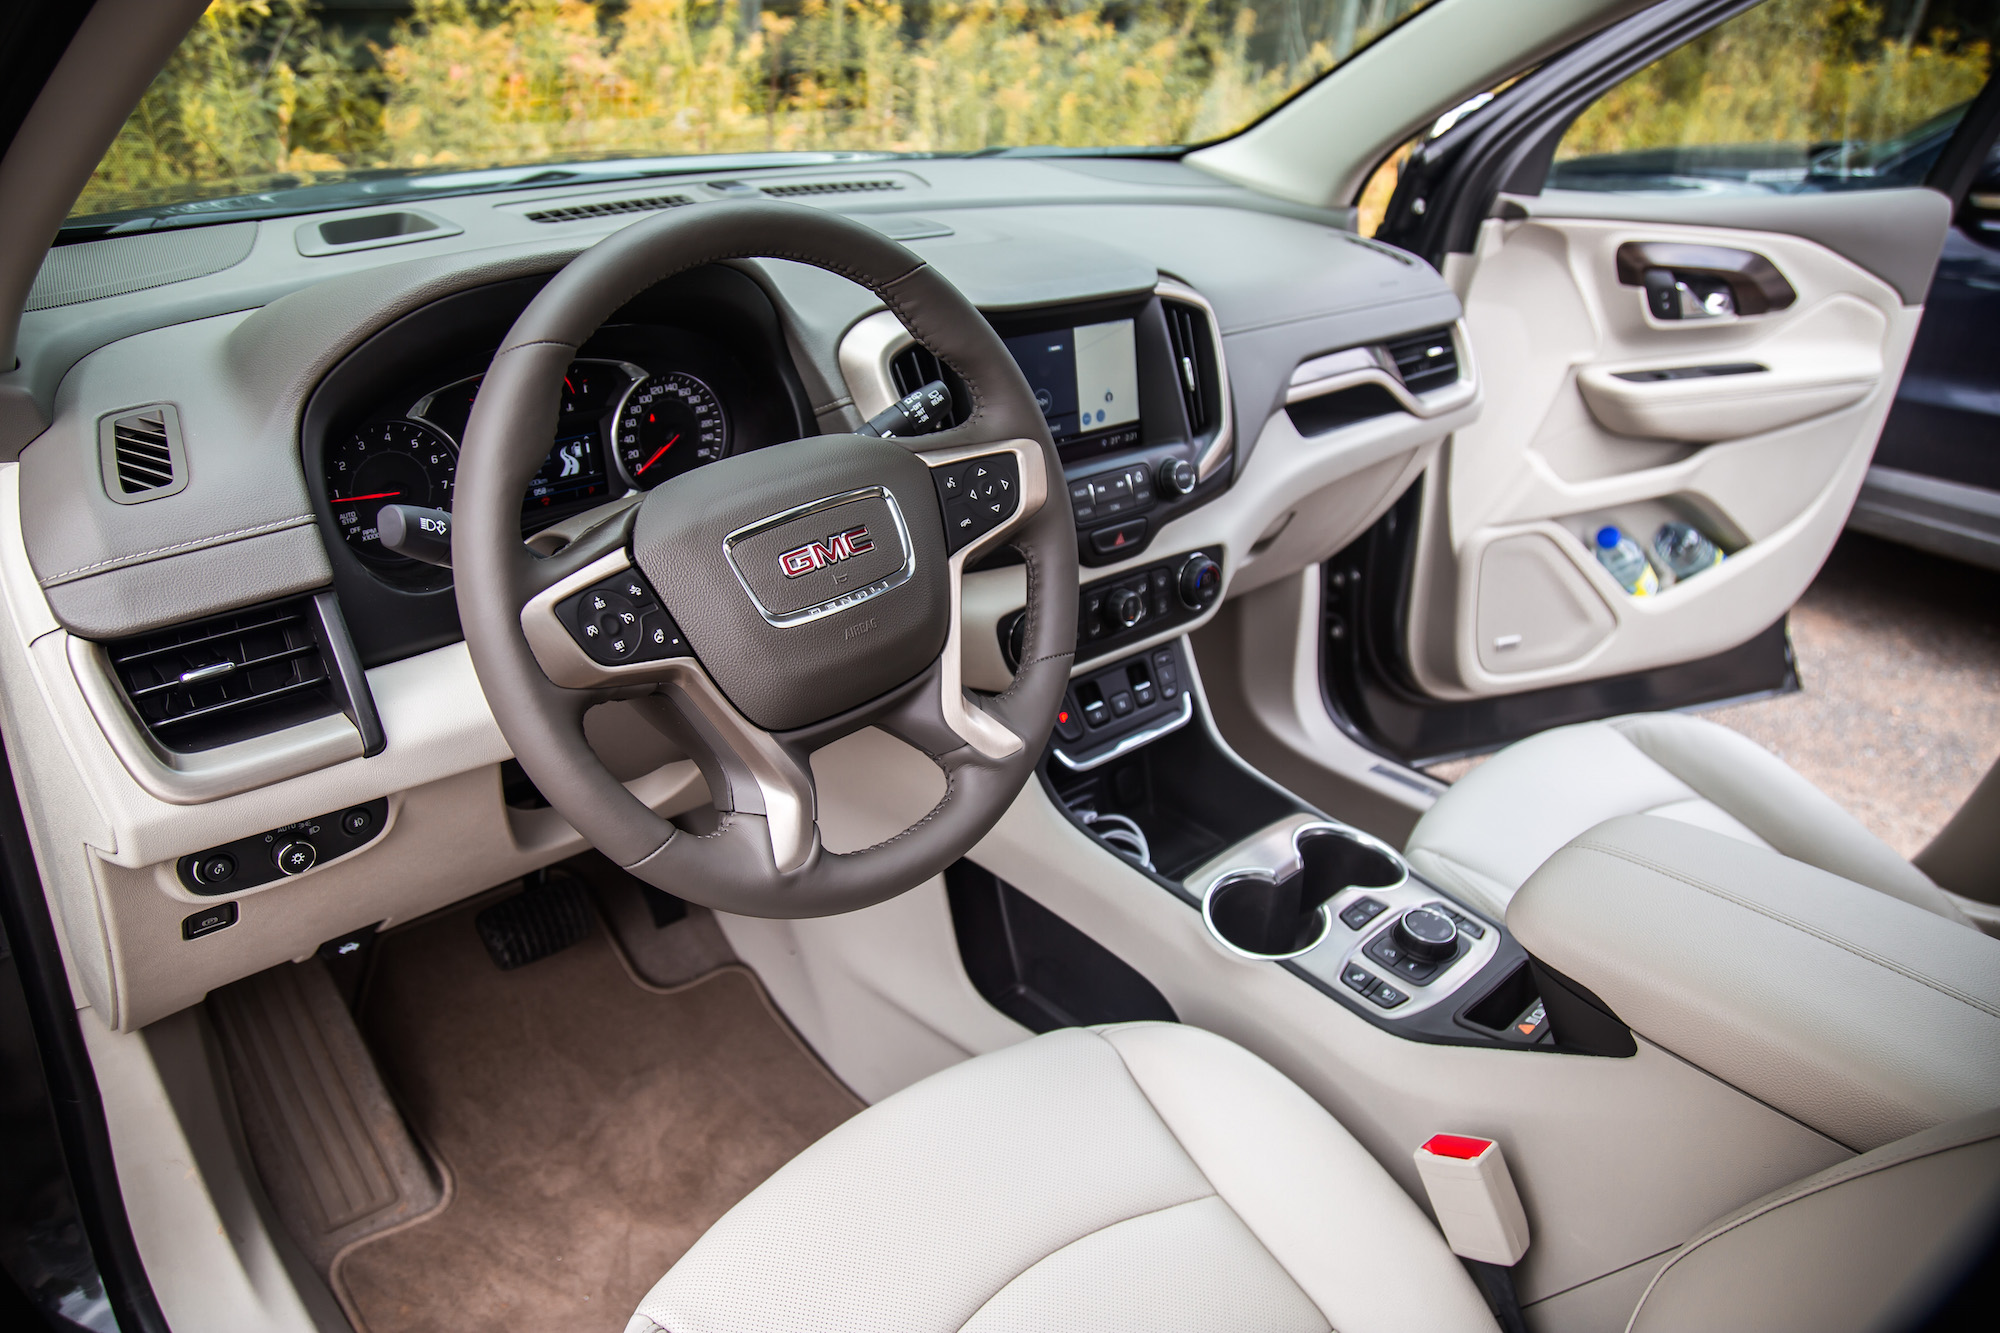 Watch furthermore 2019 Gmc Canyon Denali Changes likewise 2013 Gmc Yukon Hybrid Baseball Card besides Quick Spin 2016 Jeep Cherokee Overland 4x4 as well 2018 Gmc Acadia Limited Review. on 2017 gmc acadia inside